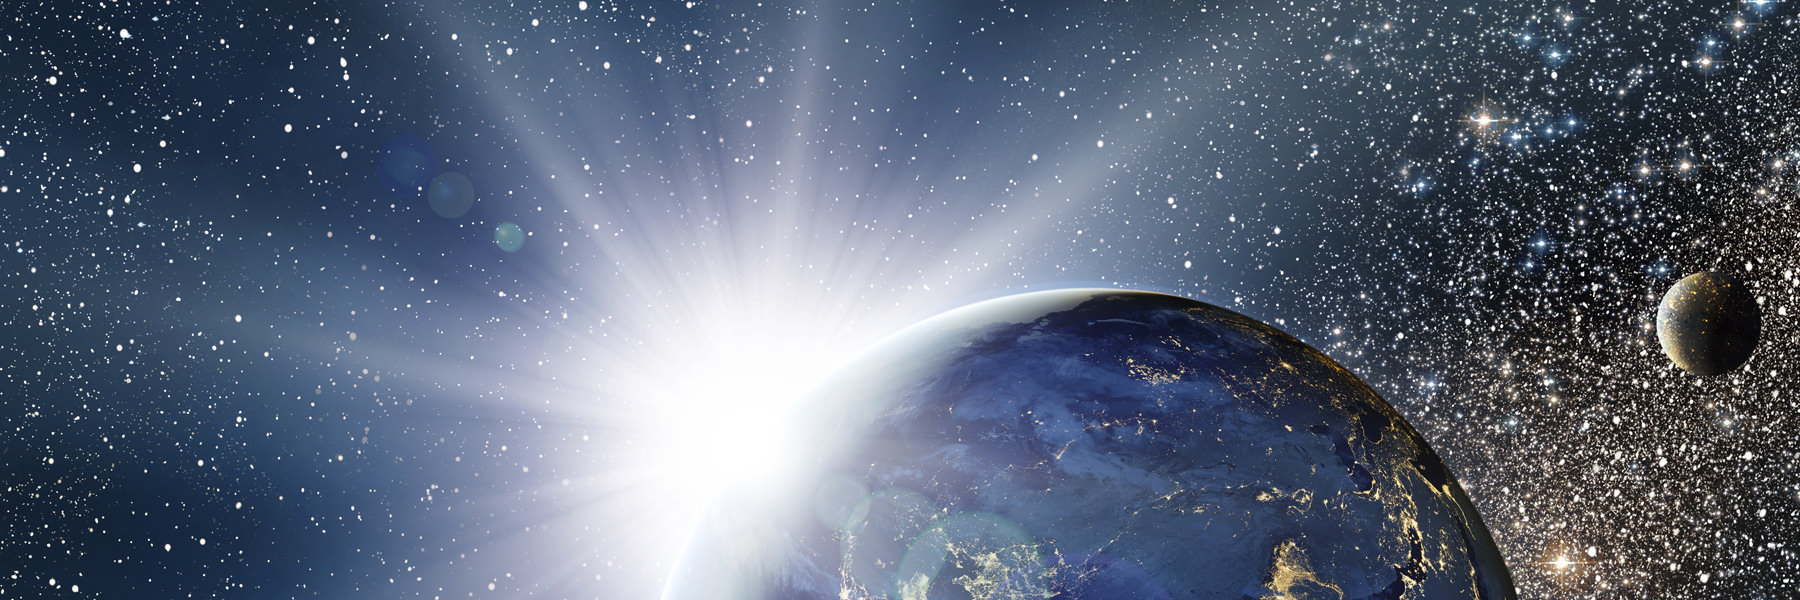 Banner Image - White sun peeking out from earth